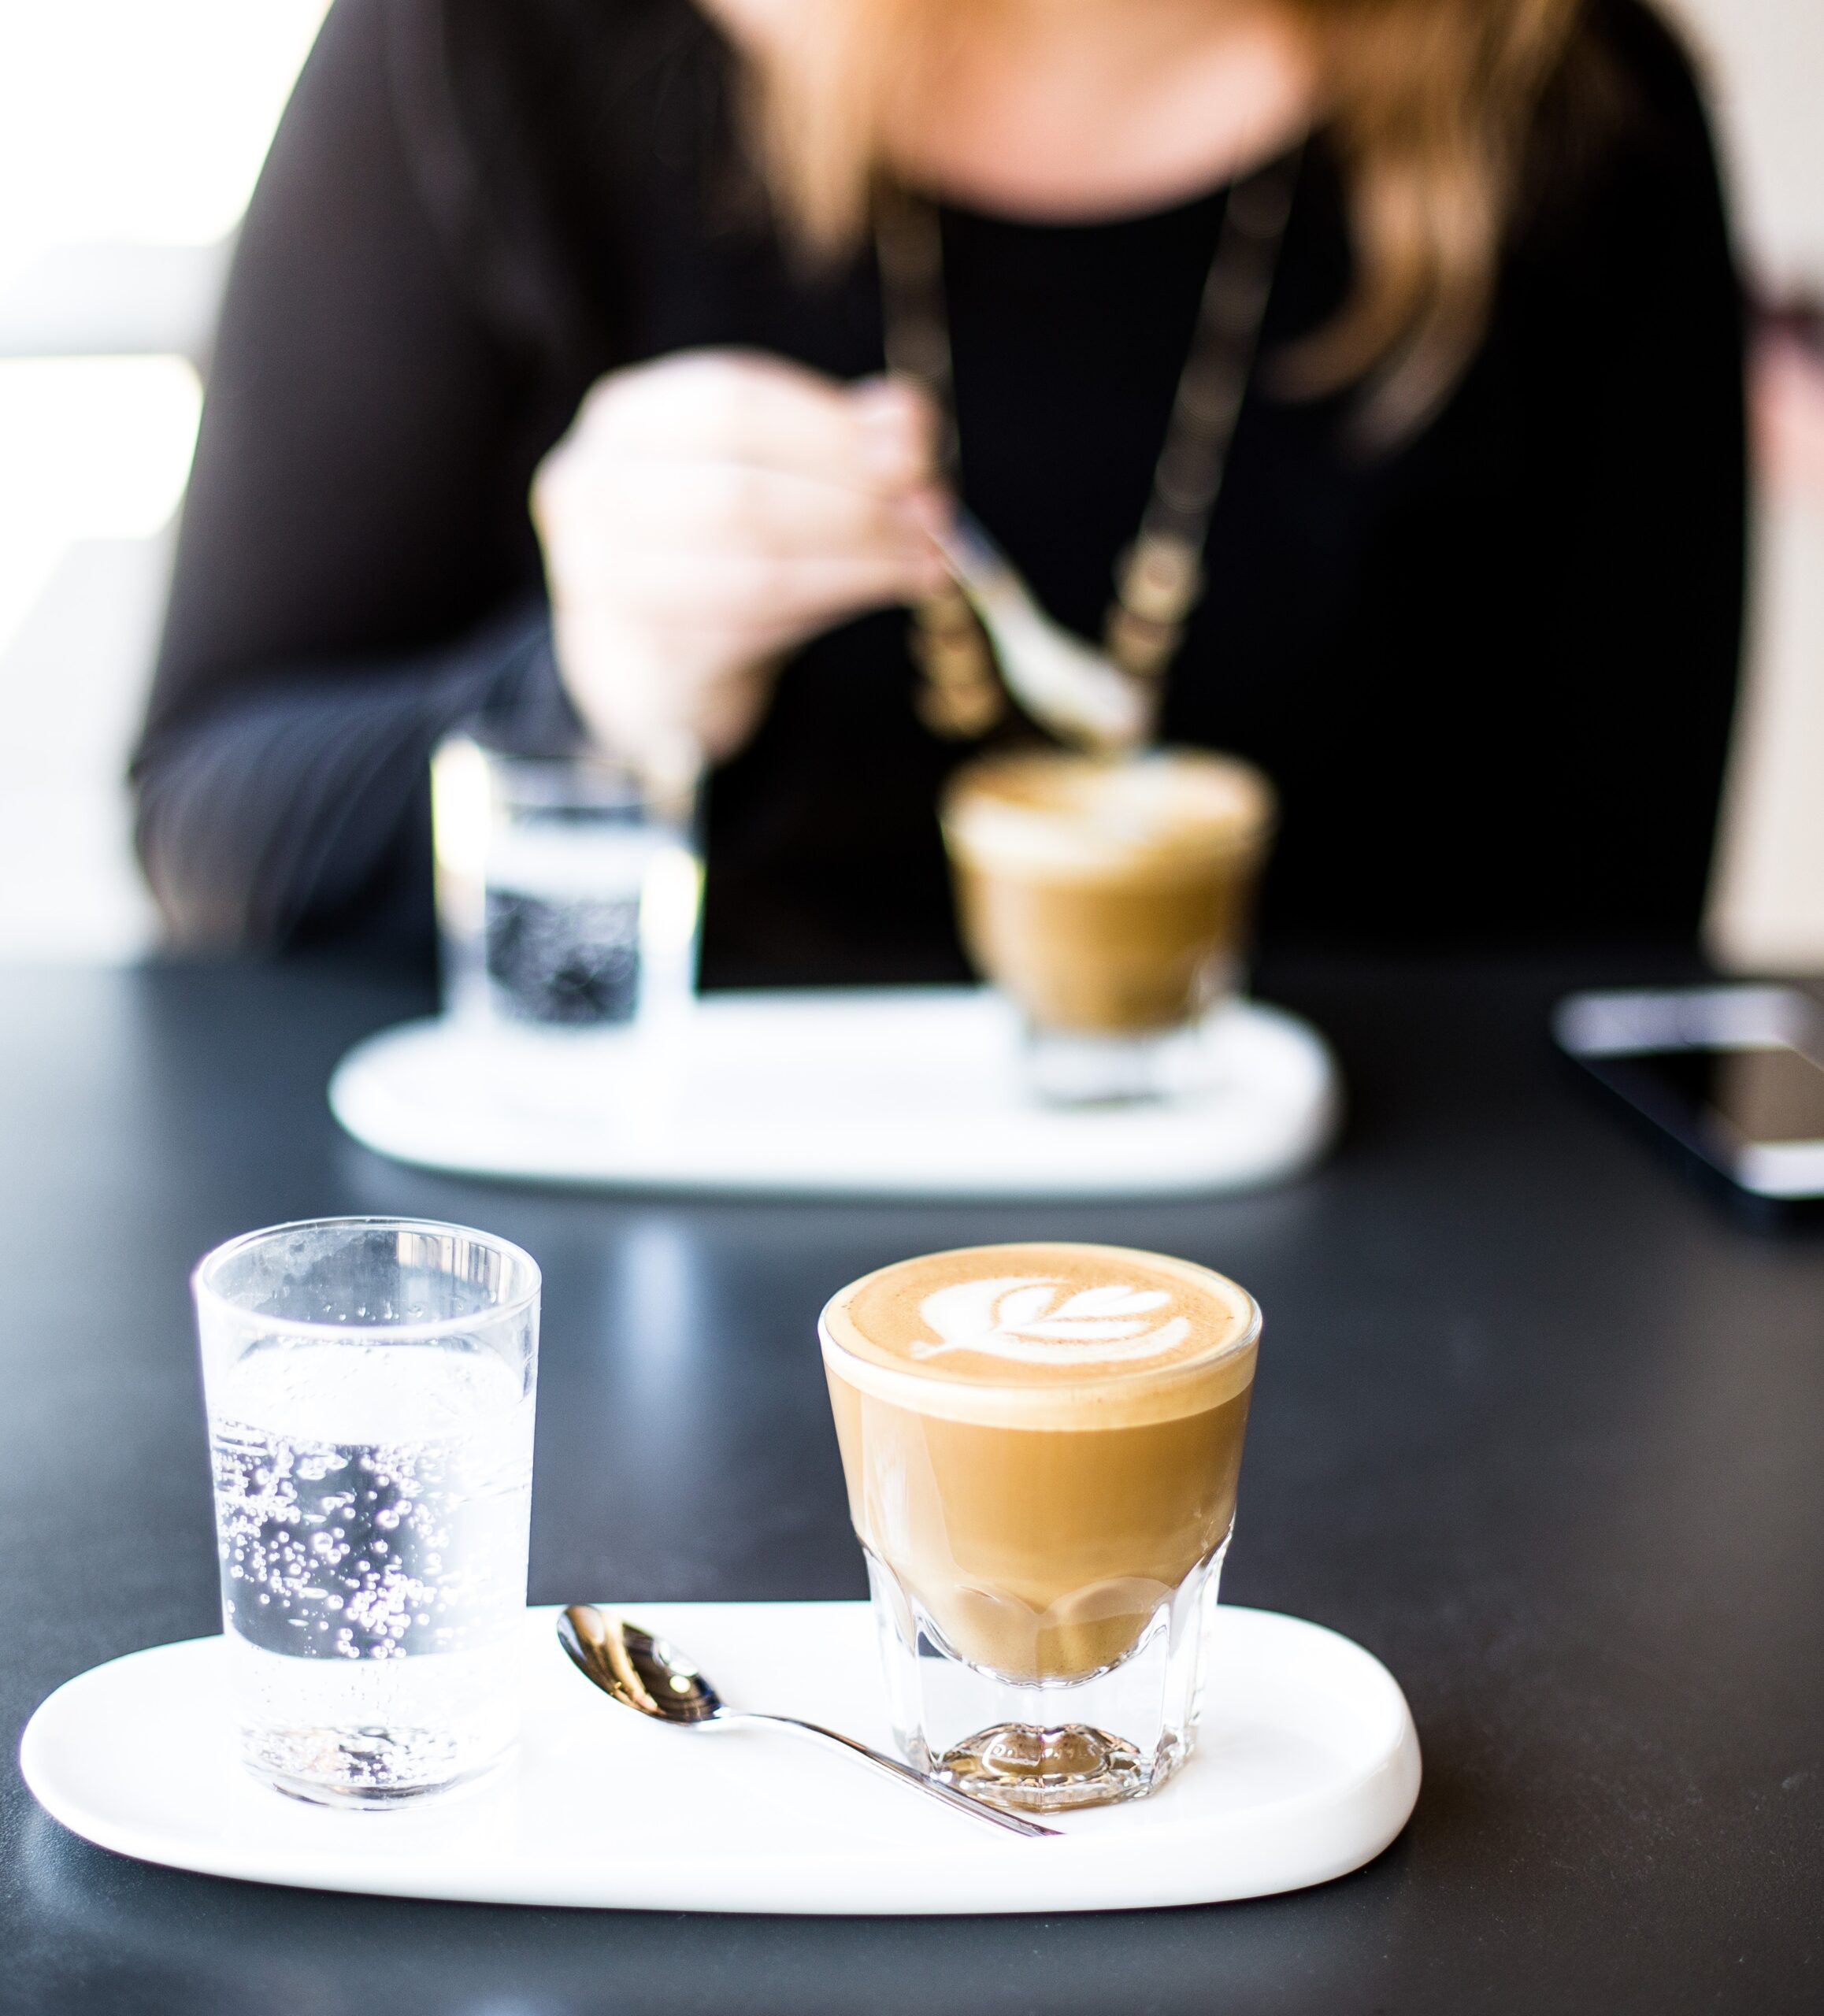 Two individuals having a coaching session around a coffee